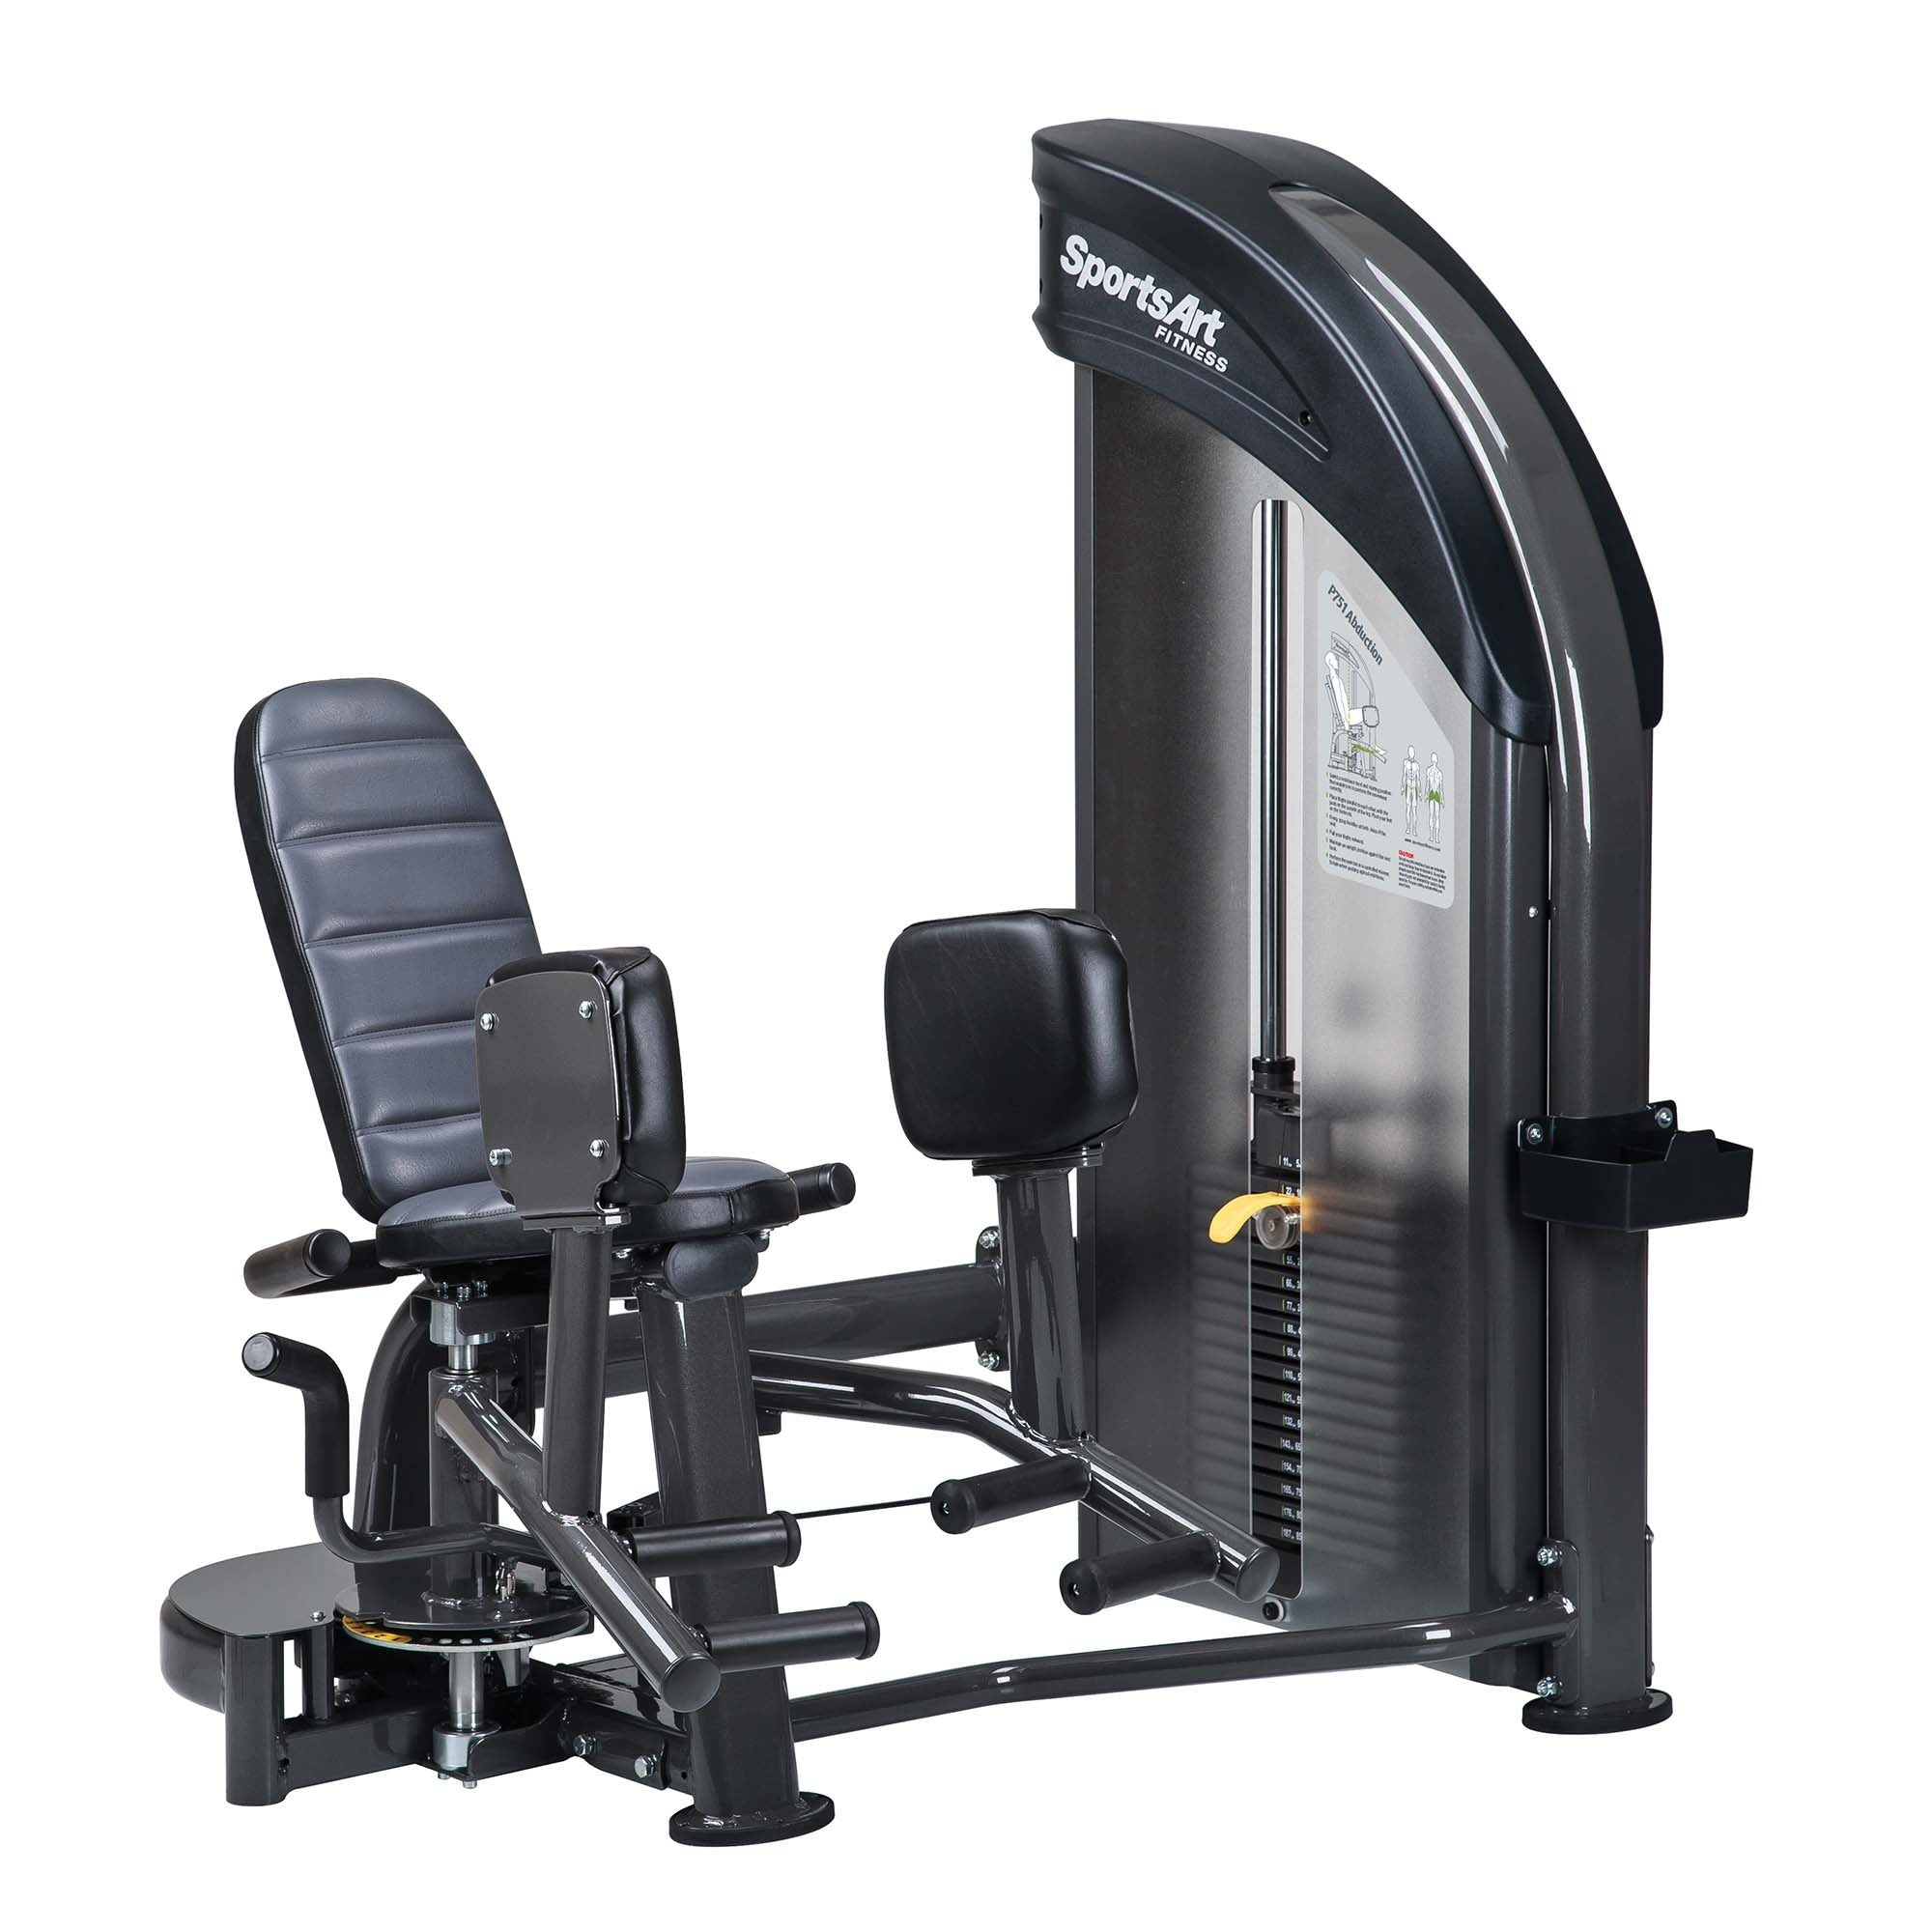 SportsArt P751 PERFORMANCE ABDUCTION Machine